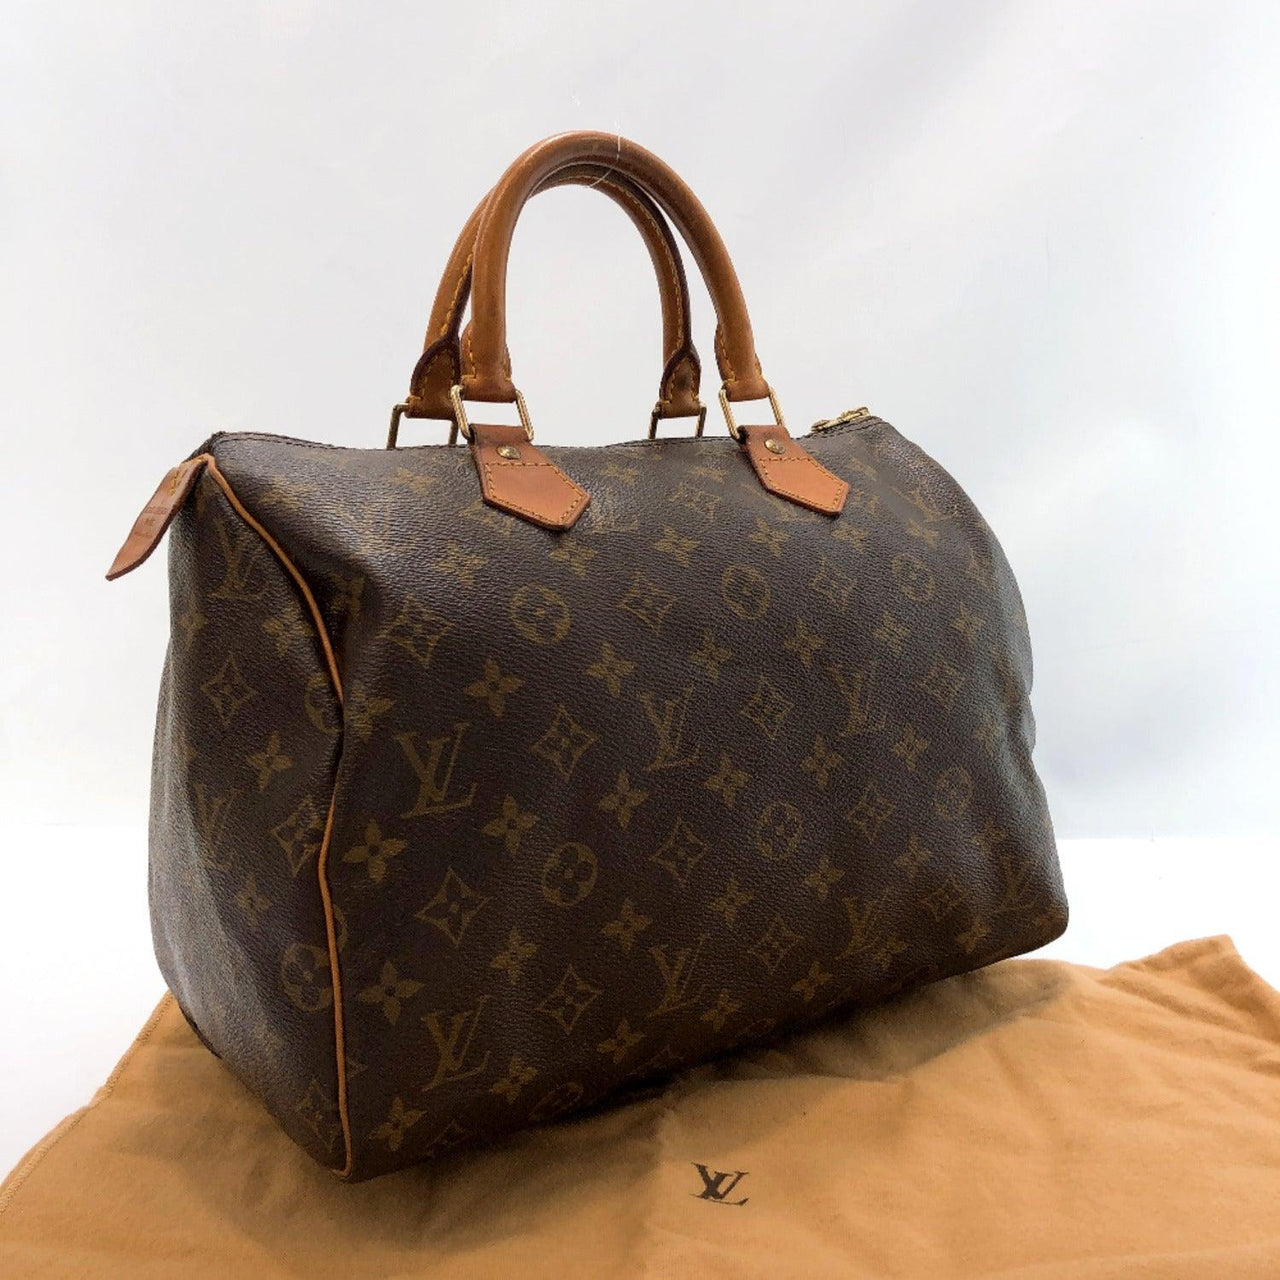 LOUIS VUITTON Handbag M41526 Speedy 30 vintage Monogram canvas Brown Women Used